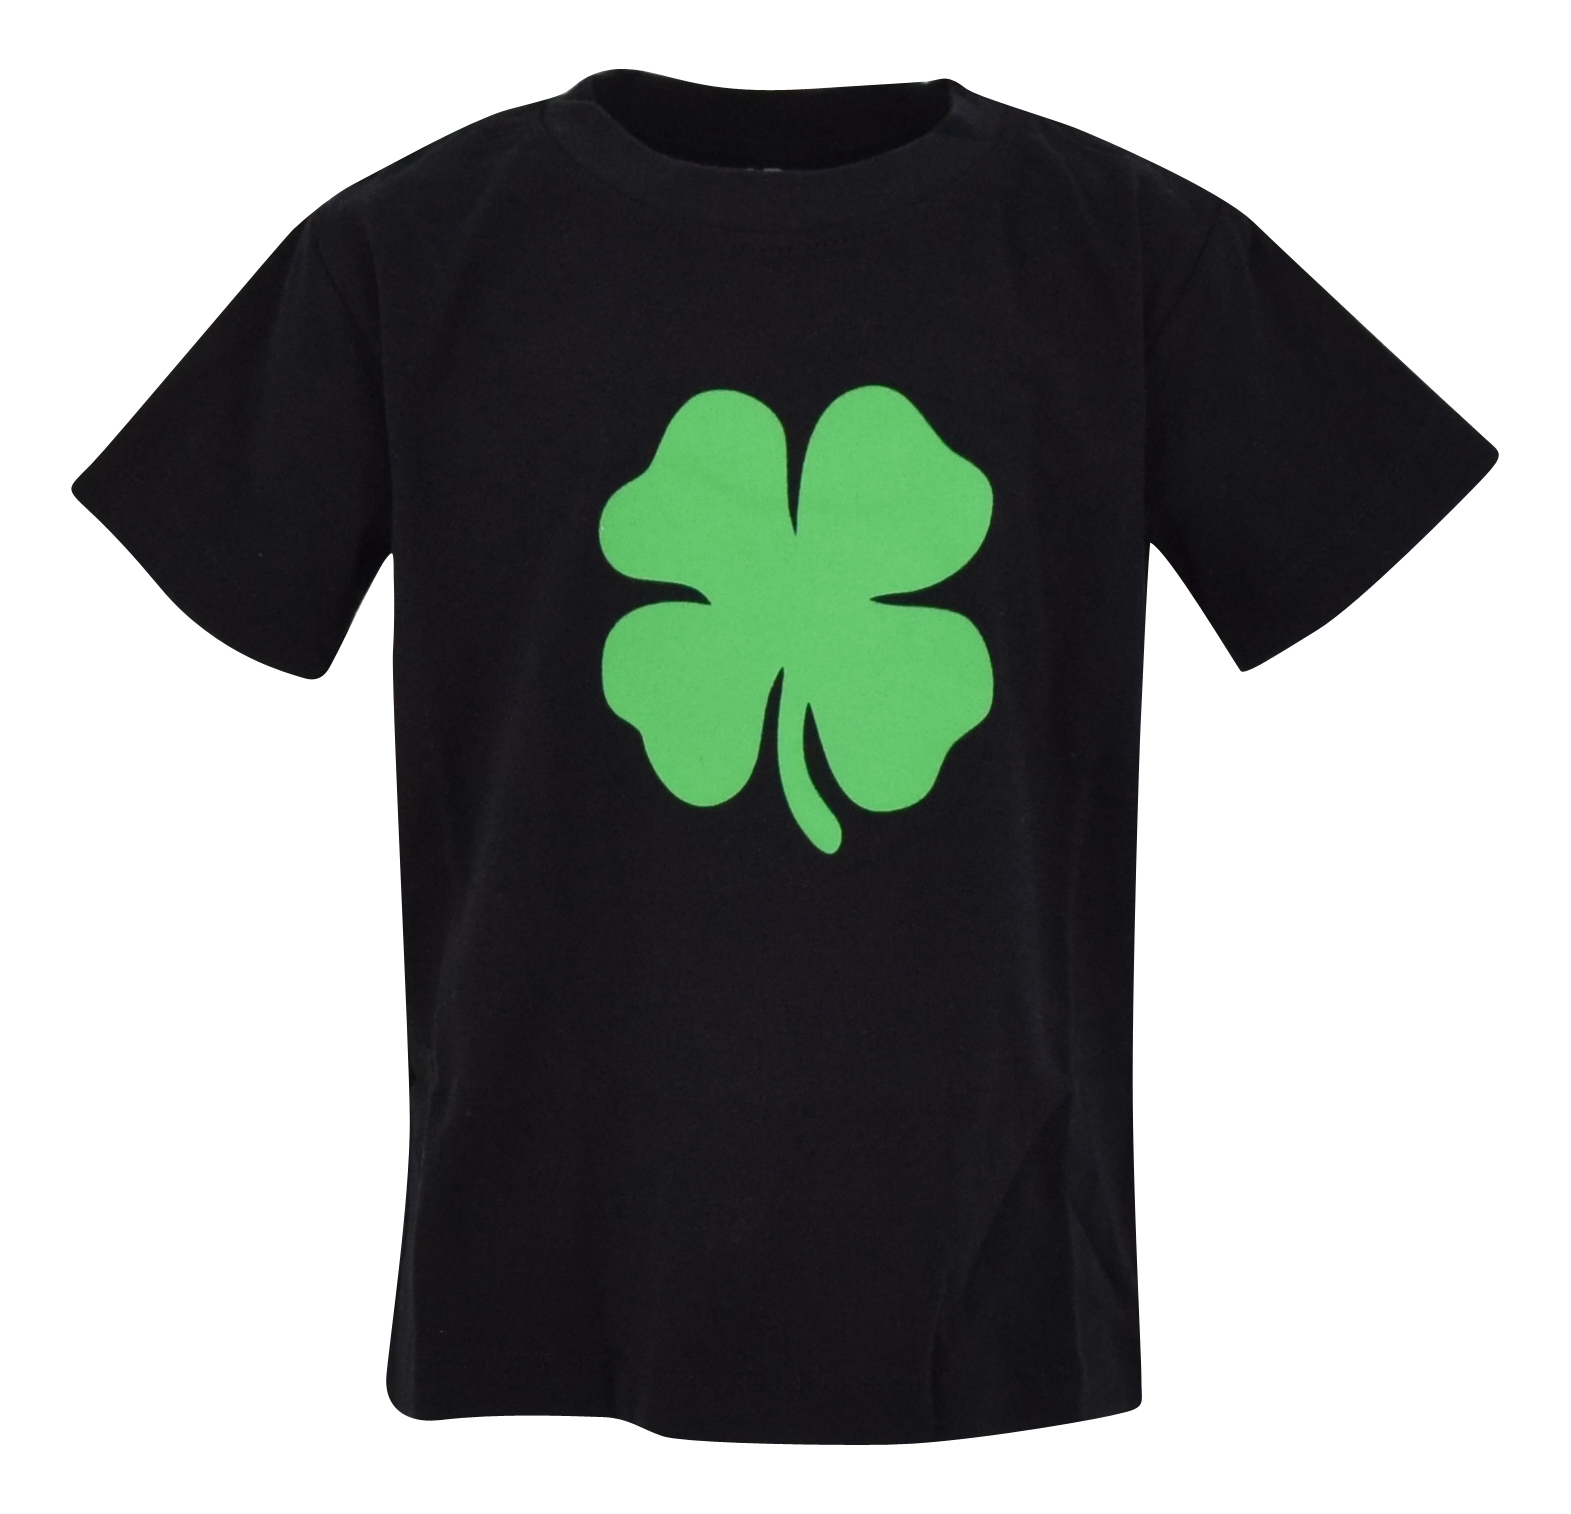 Boys-2-Piece-ST-Patricks-Day-Clover-Outfit-2t-3t-4t-5-6-7-8-Toddler-Kids-Clothes thumbnail 29